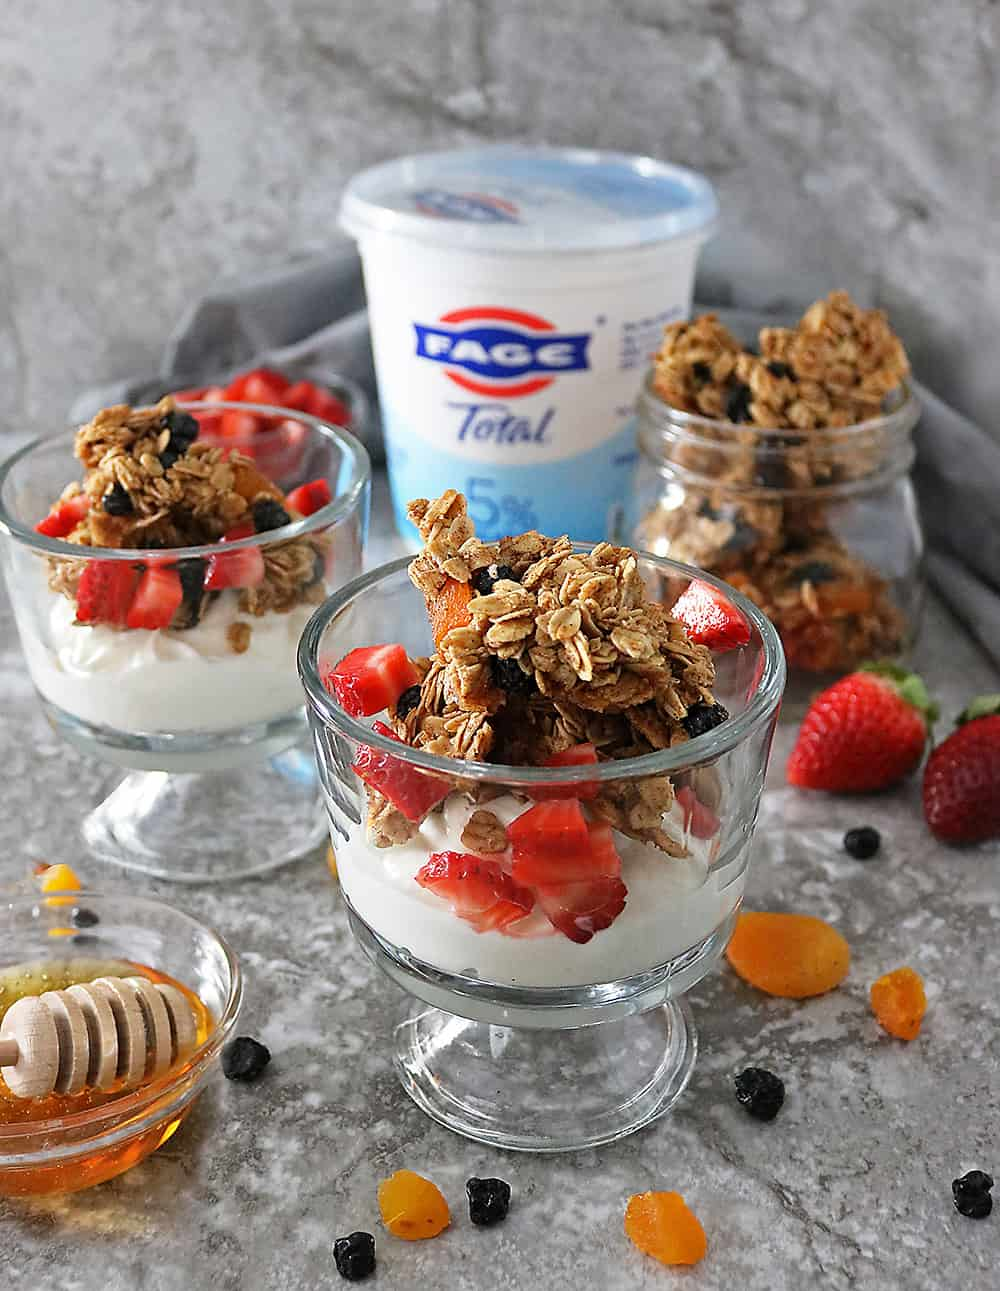 Delicious Clumpy Blueberry Apricot Granola with creamy FAGE